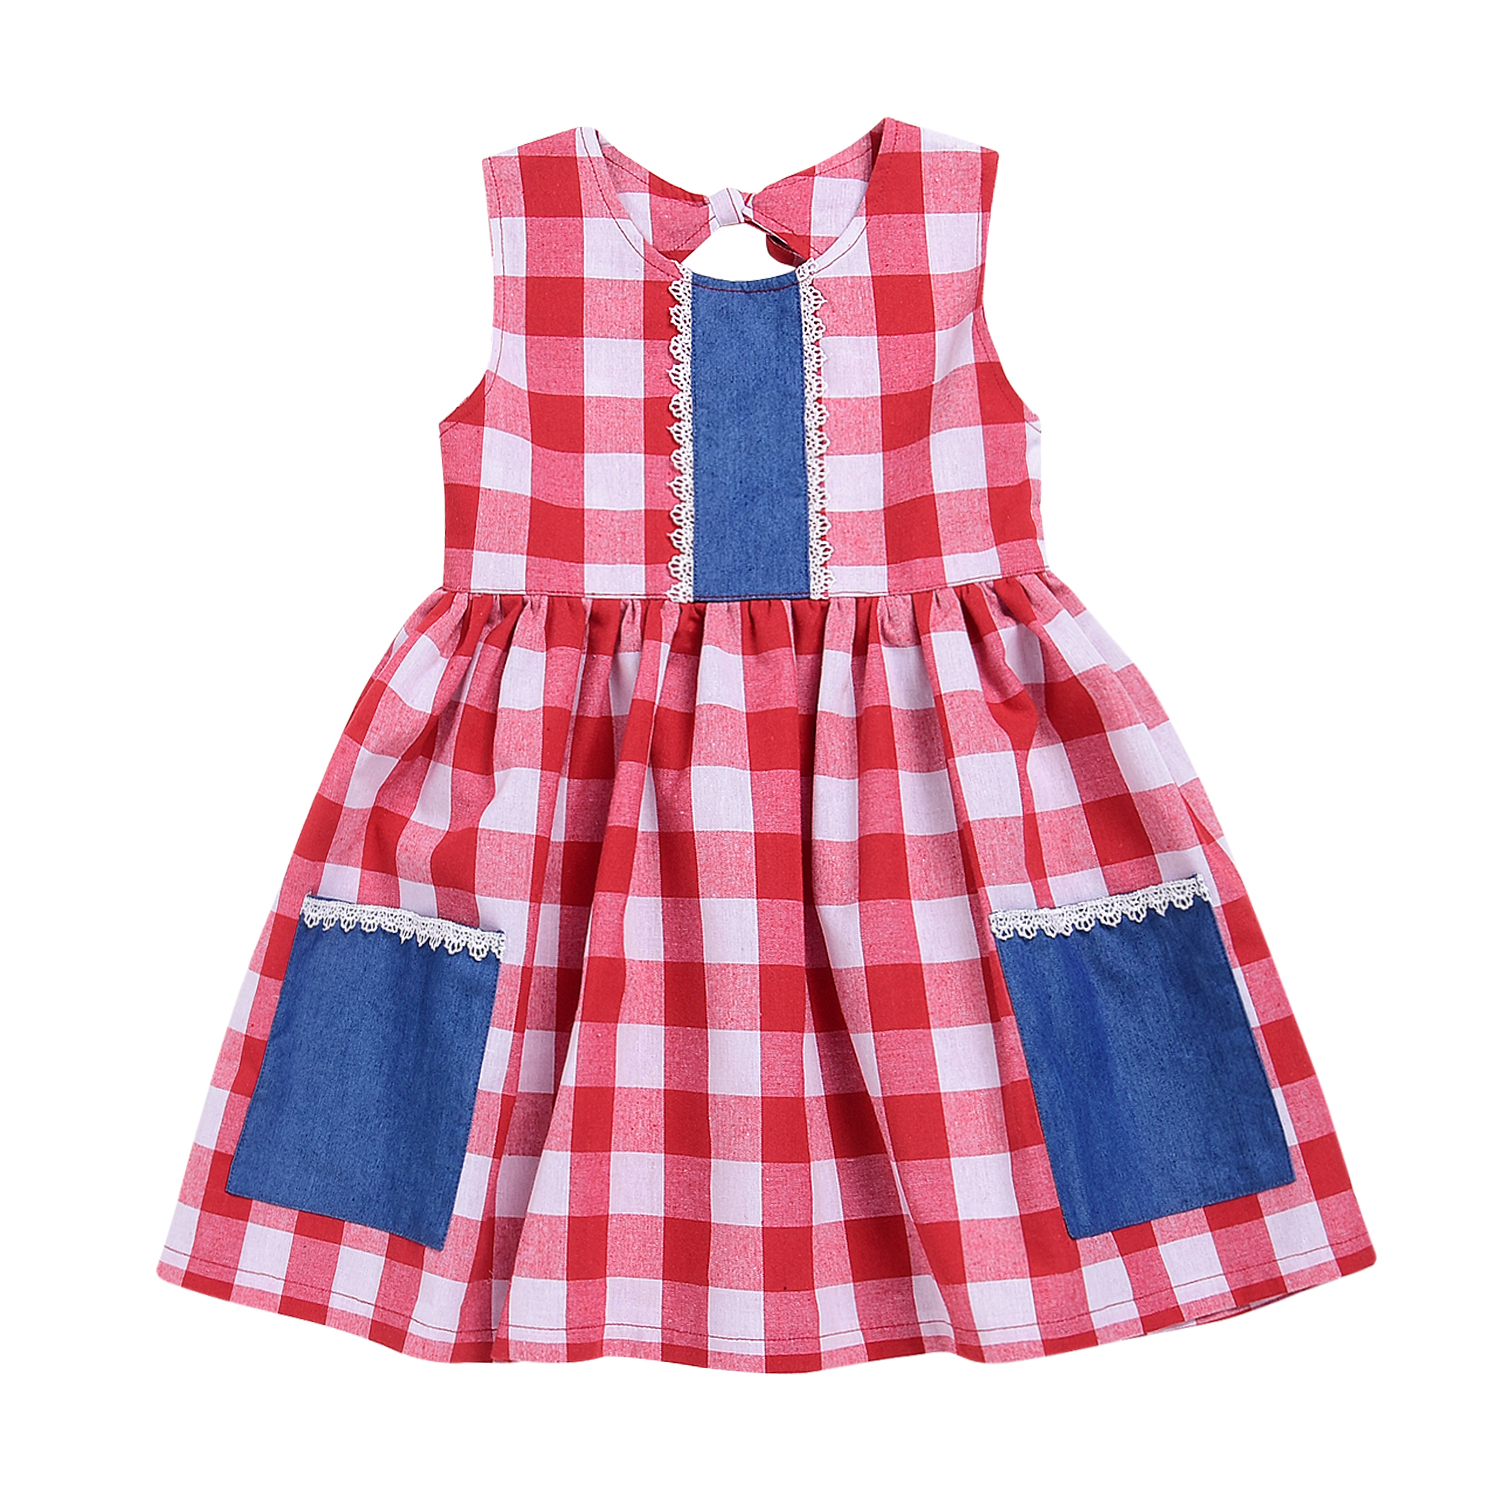 Toddler Kids Baby Girl Cotton Dresses Round Neck Sleeveless Backless